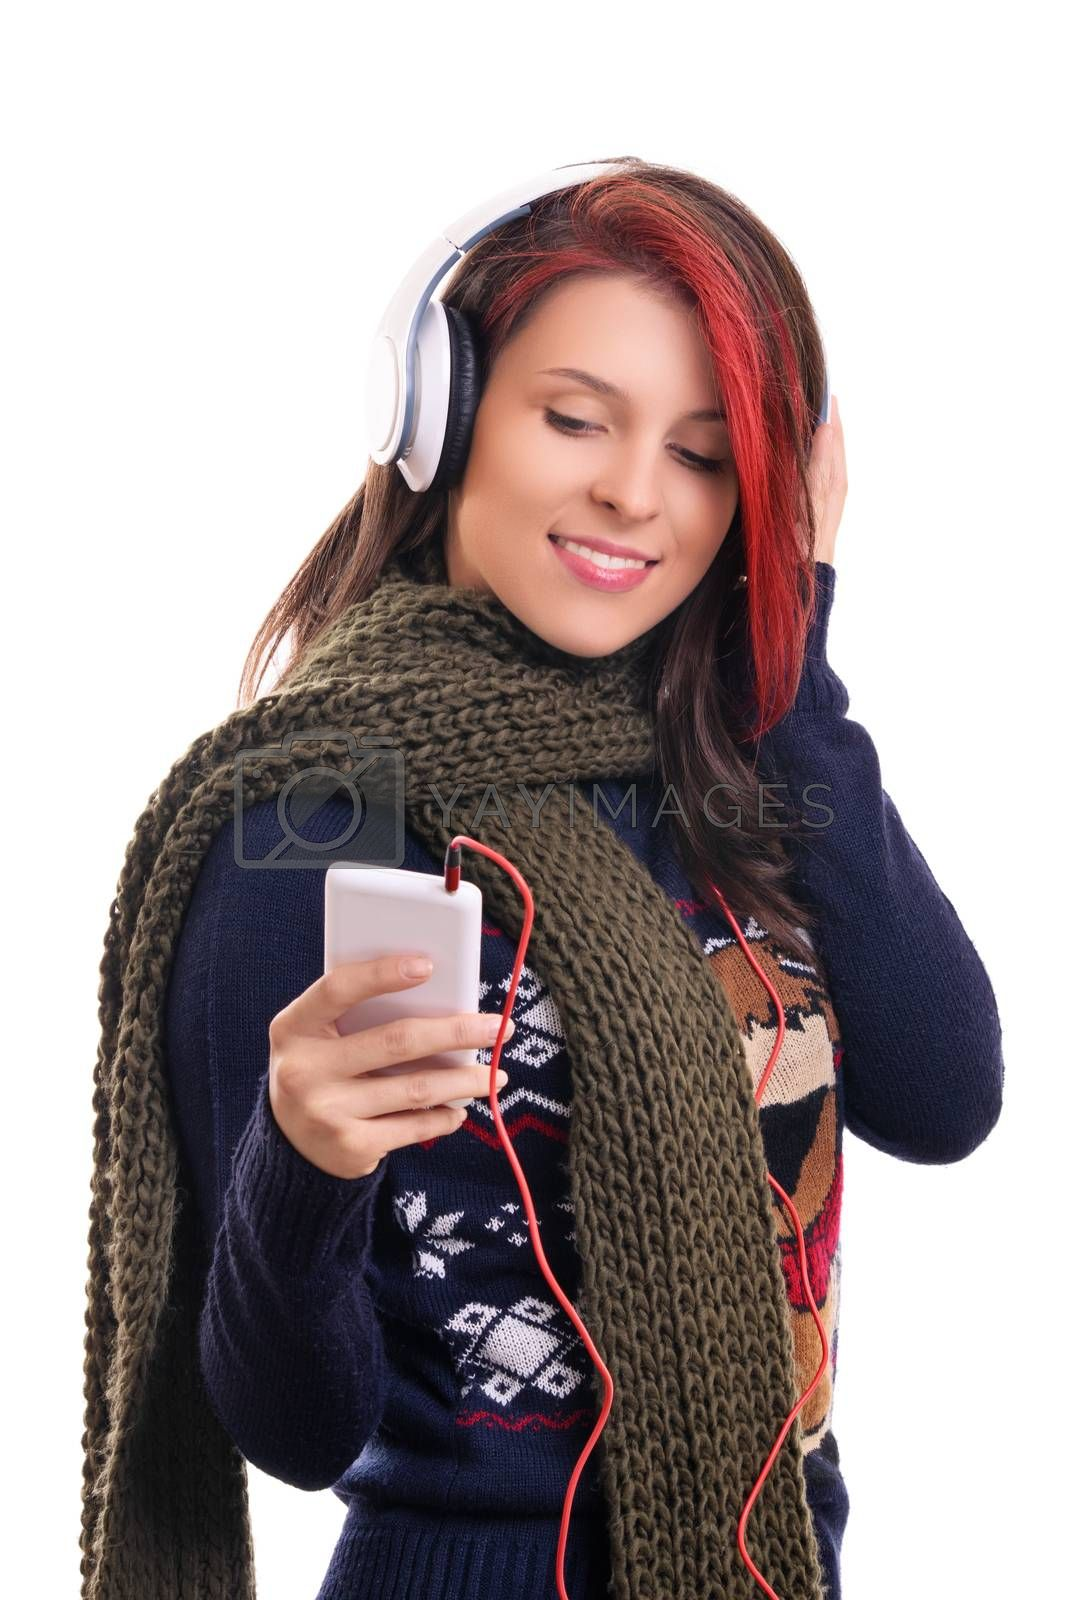 Beautiful smiling young woman wearing winter scarf with headphones listening to music, looking at her mobile phone, isolated on white background. Season, technology and people concept.